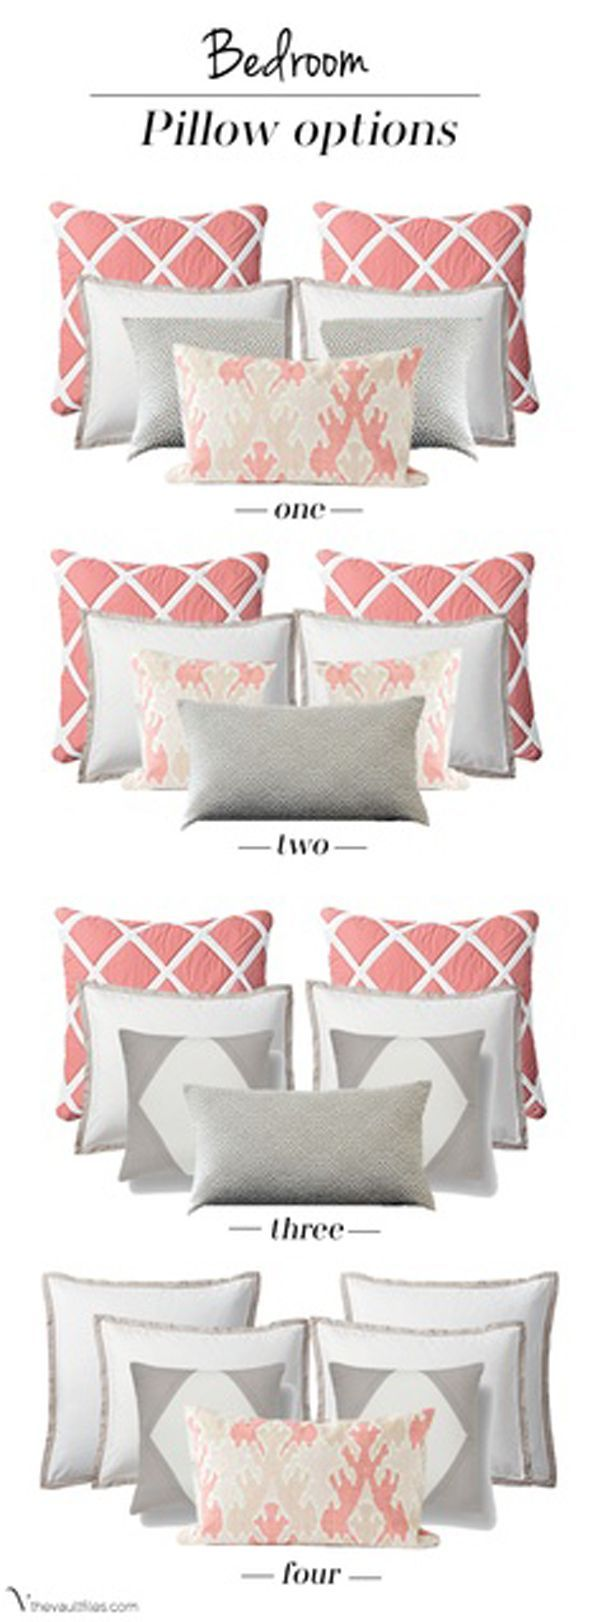 7 Joyous Clever Ideas Neutral Decorative Pillows Chairs Decorative Pillows Living Room Navy Blue Decorative Bedroom Cushions Cushions On Sofa Bedroom Pillows